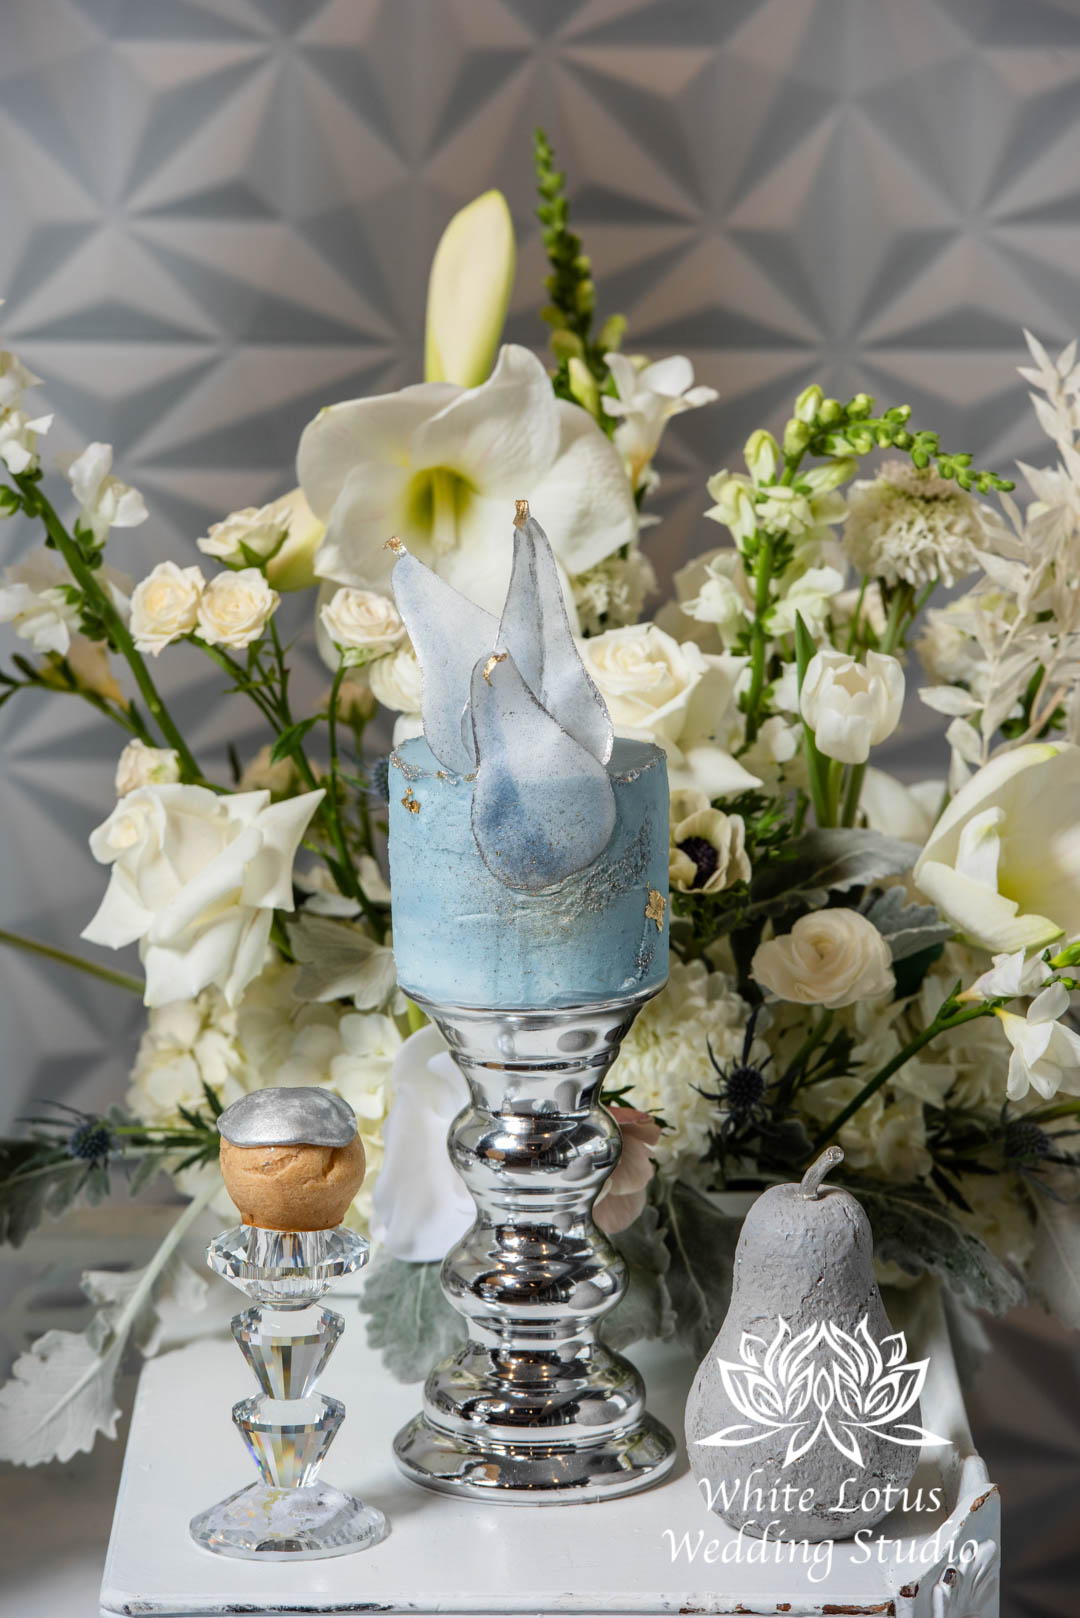 097- GLAM WINTERLUXE WEDDING INSPIRATION